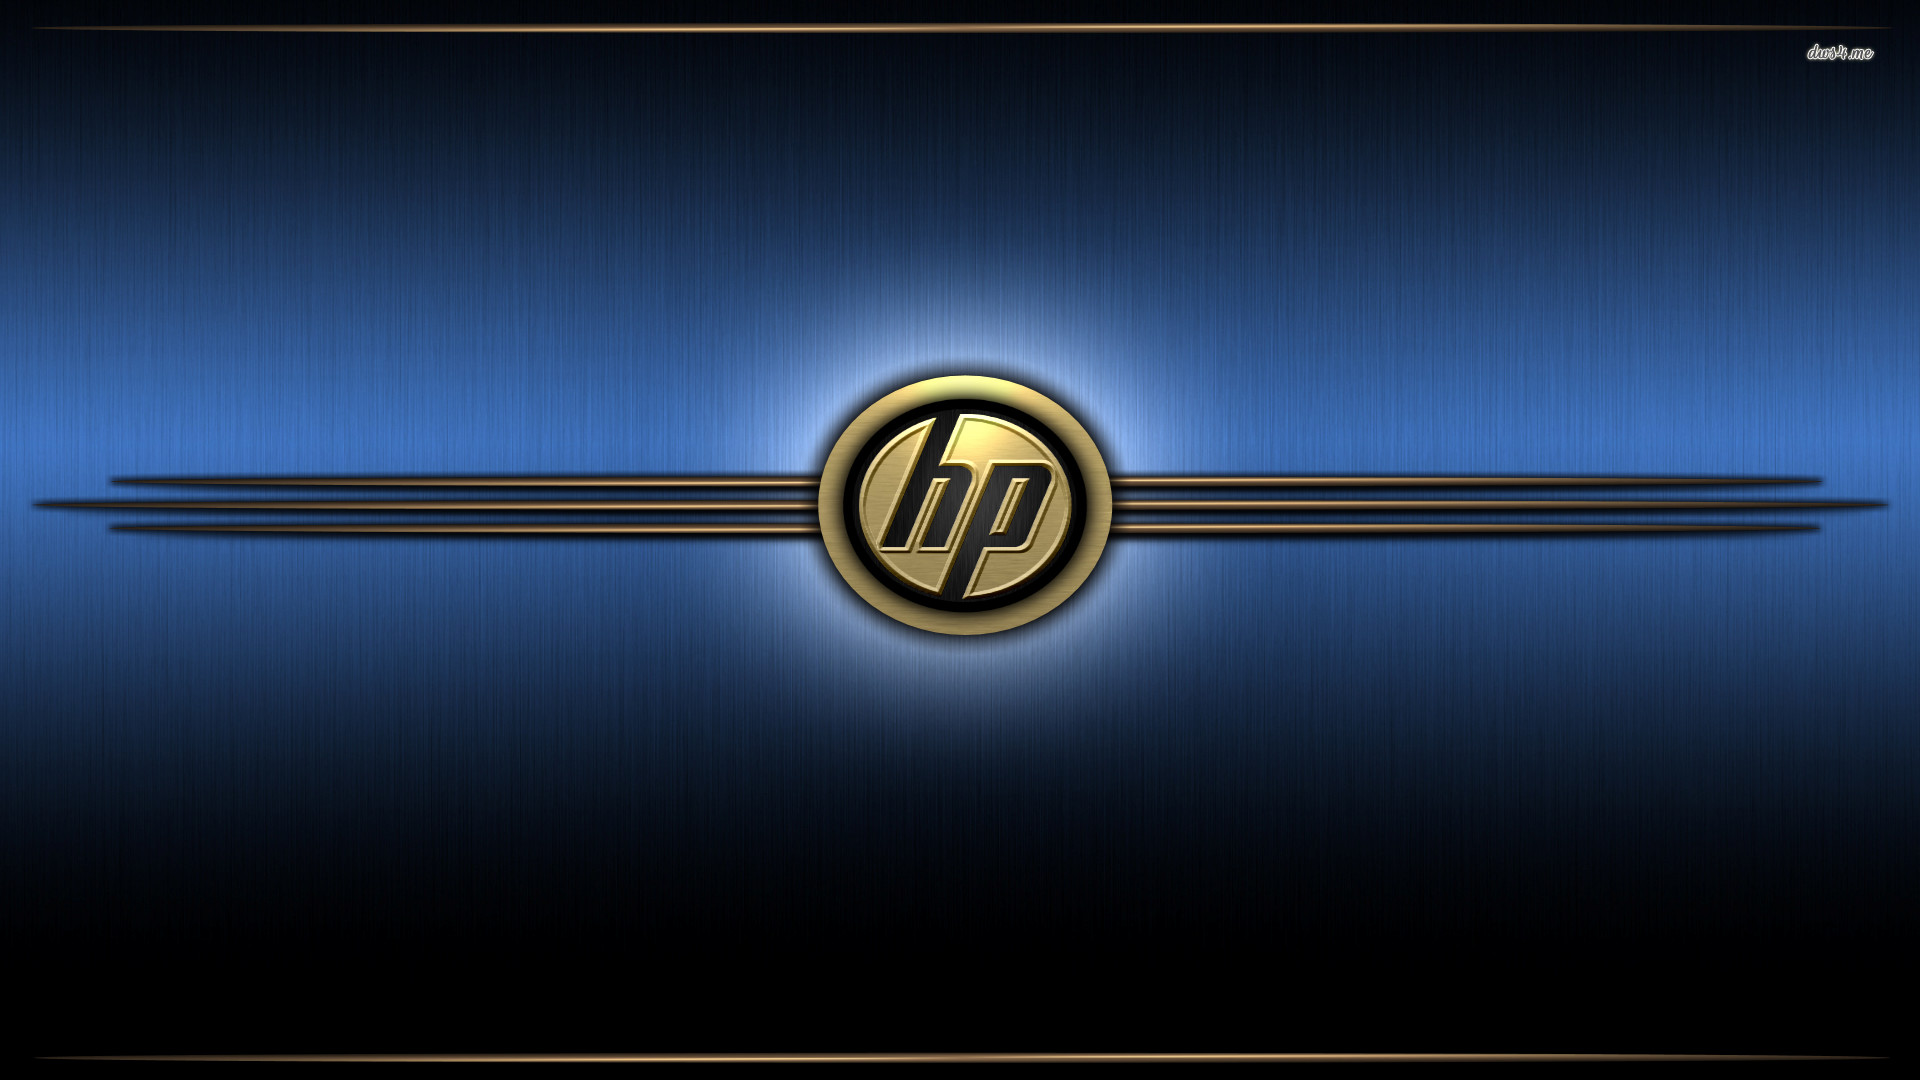 live wallpapers for hp laptop (57+ images)